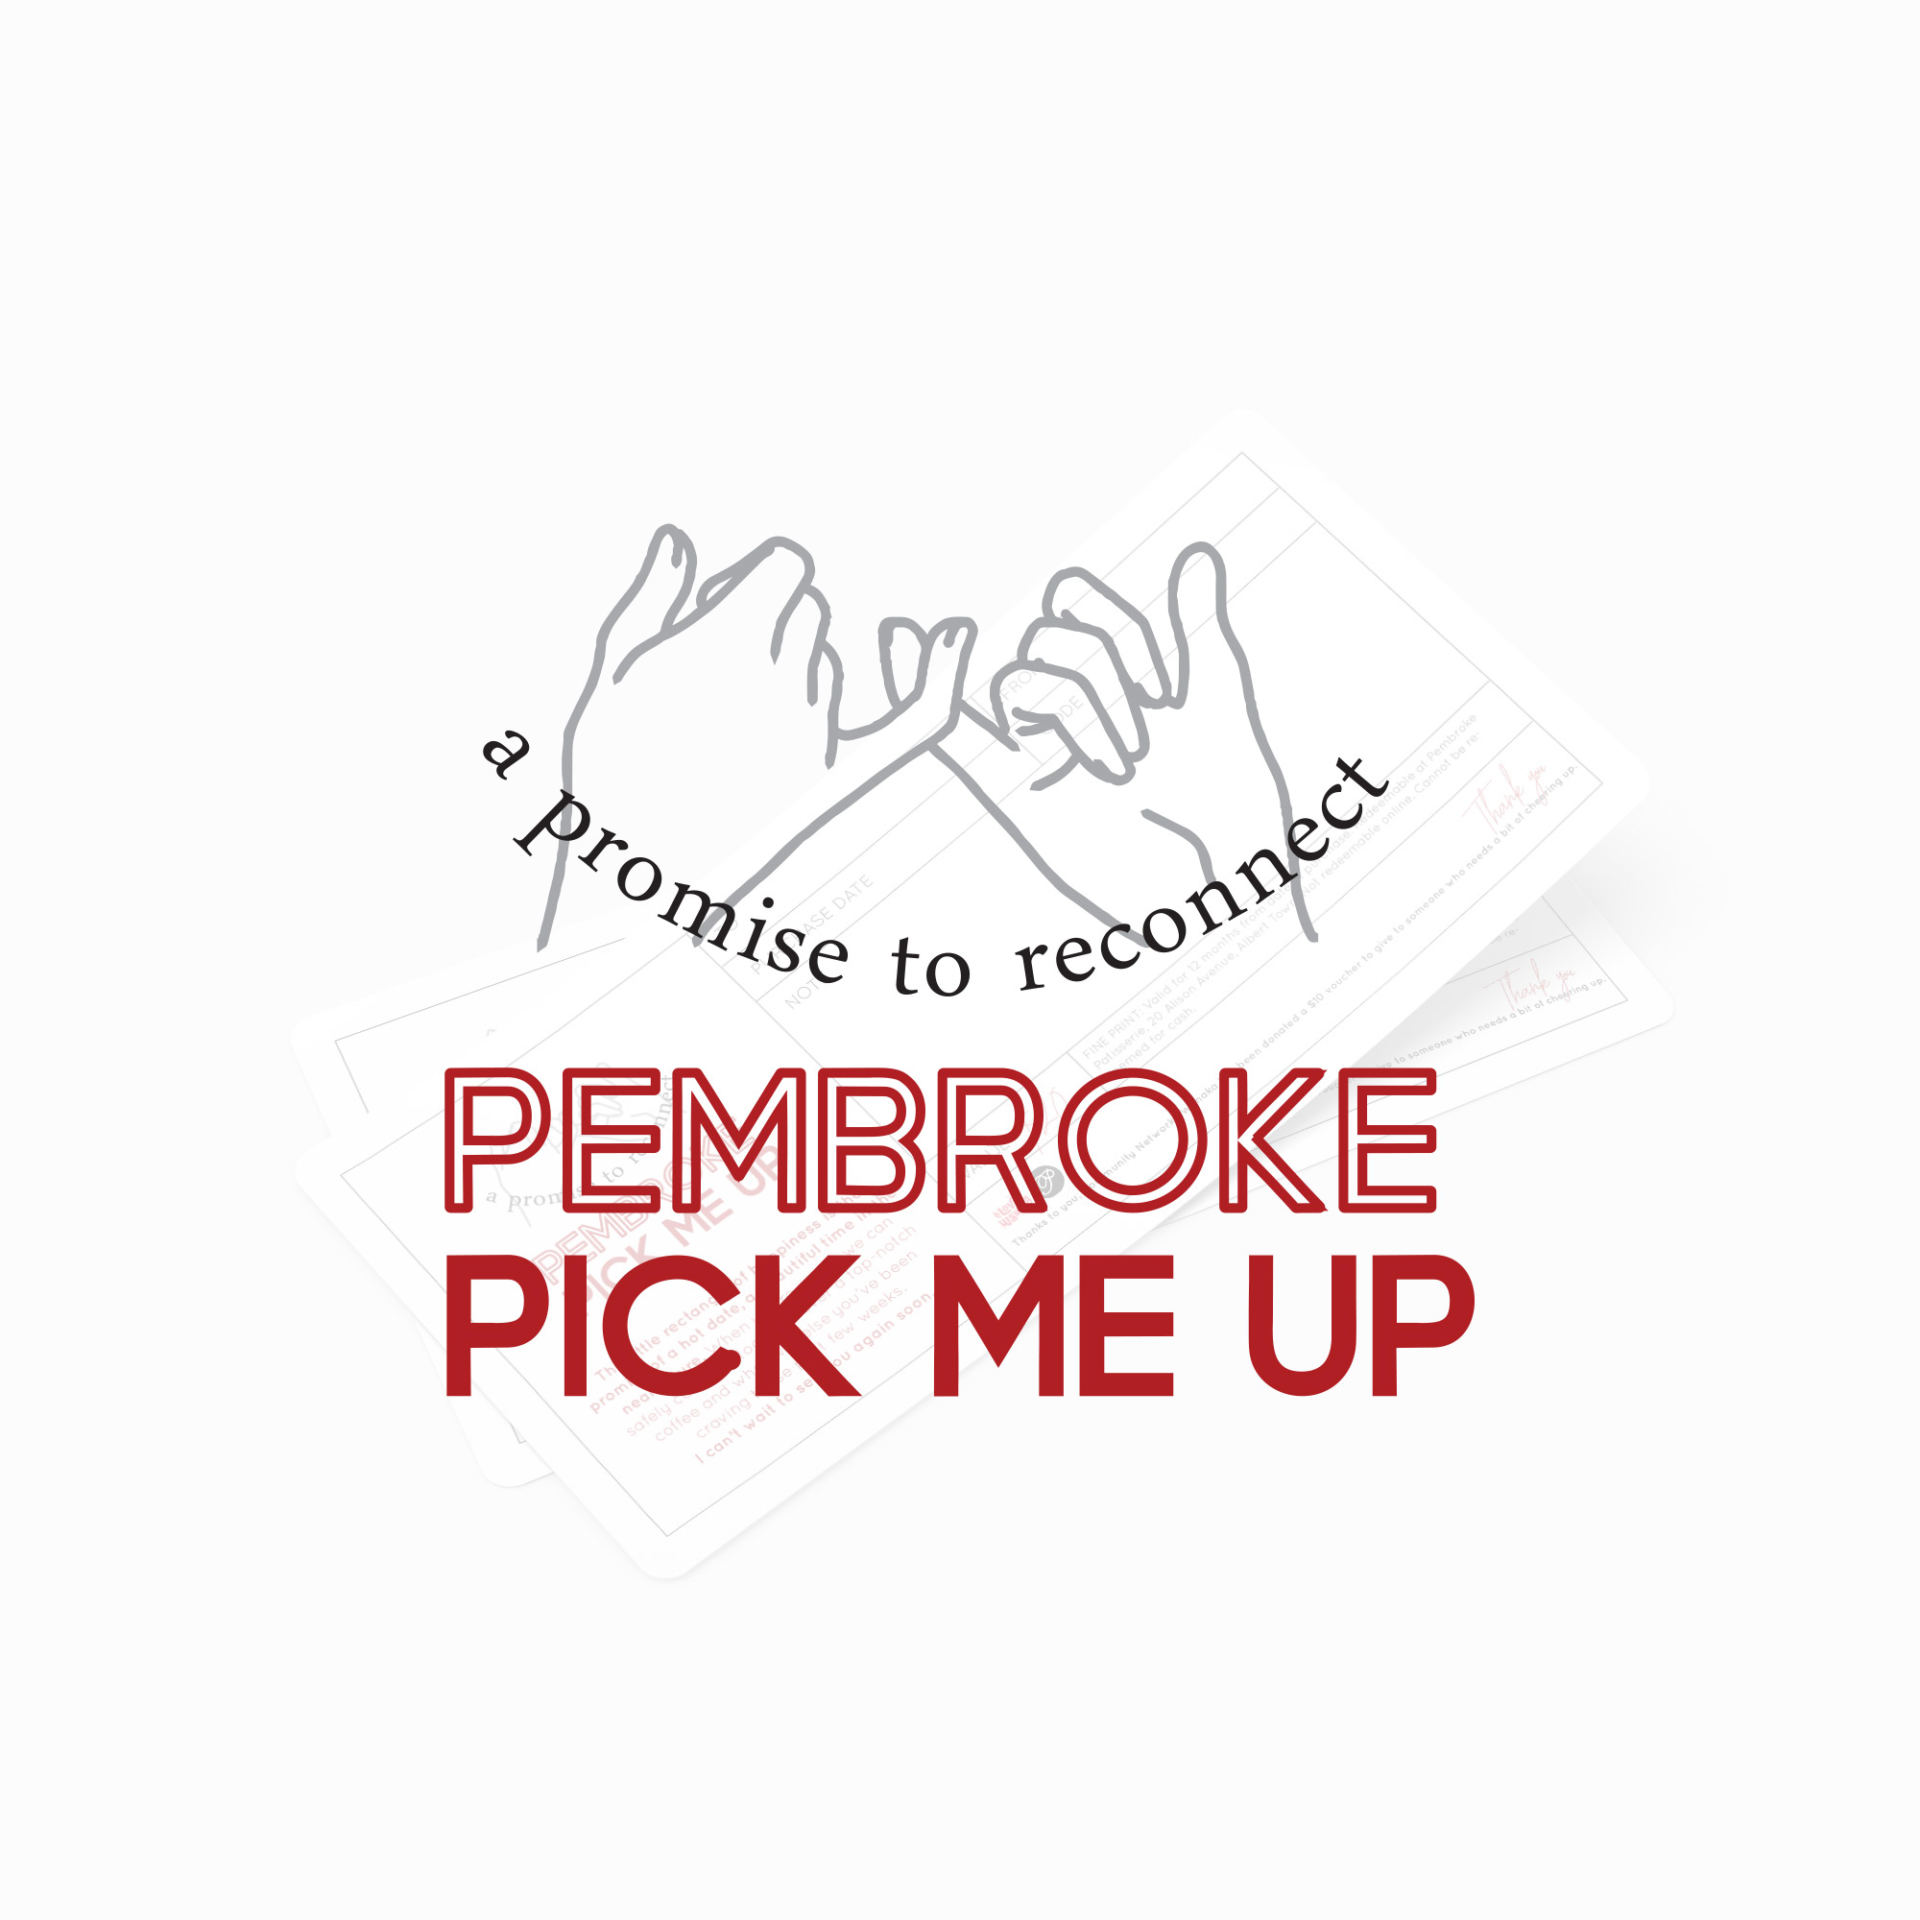 Pembroke Patisserie Pick Me Up voucher